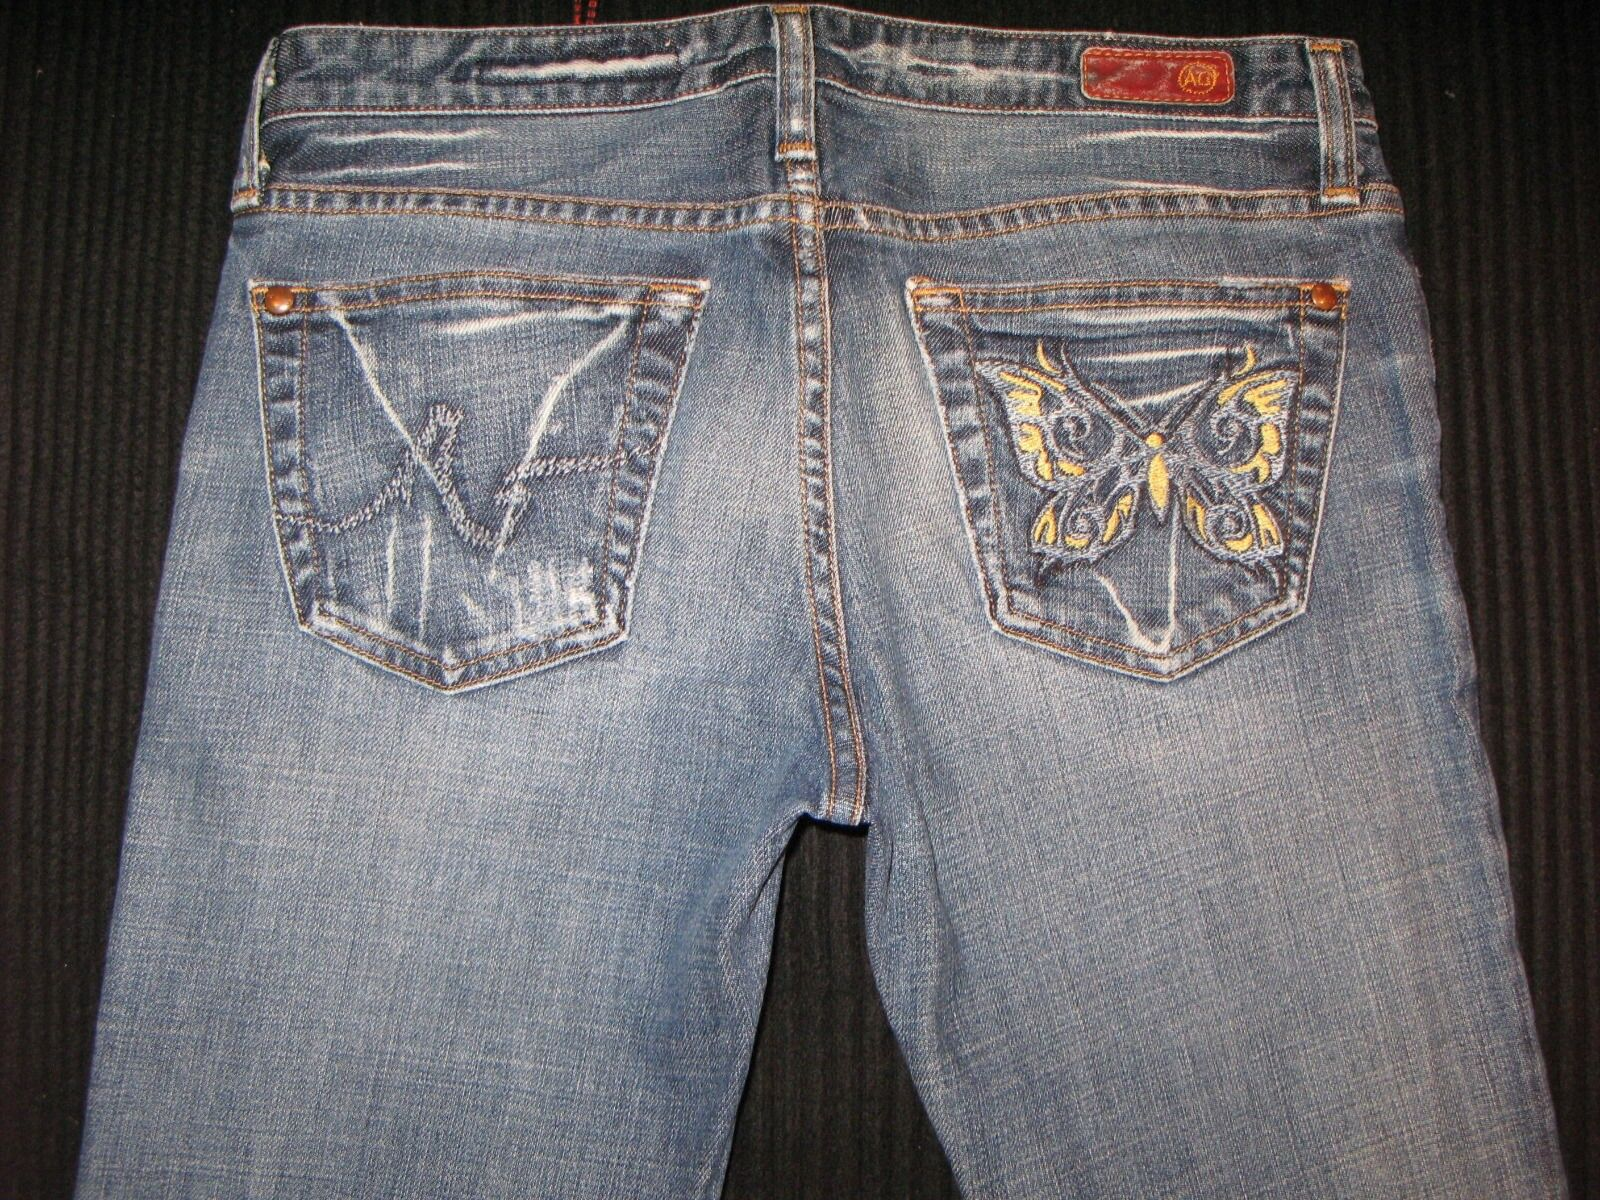 AG ADRIANO goldSCHMIED The Tease Jeans Sz 27 Low Boot Butterfly Pocs Distressed